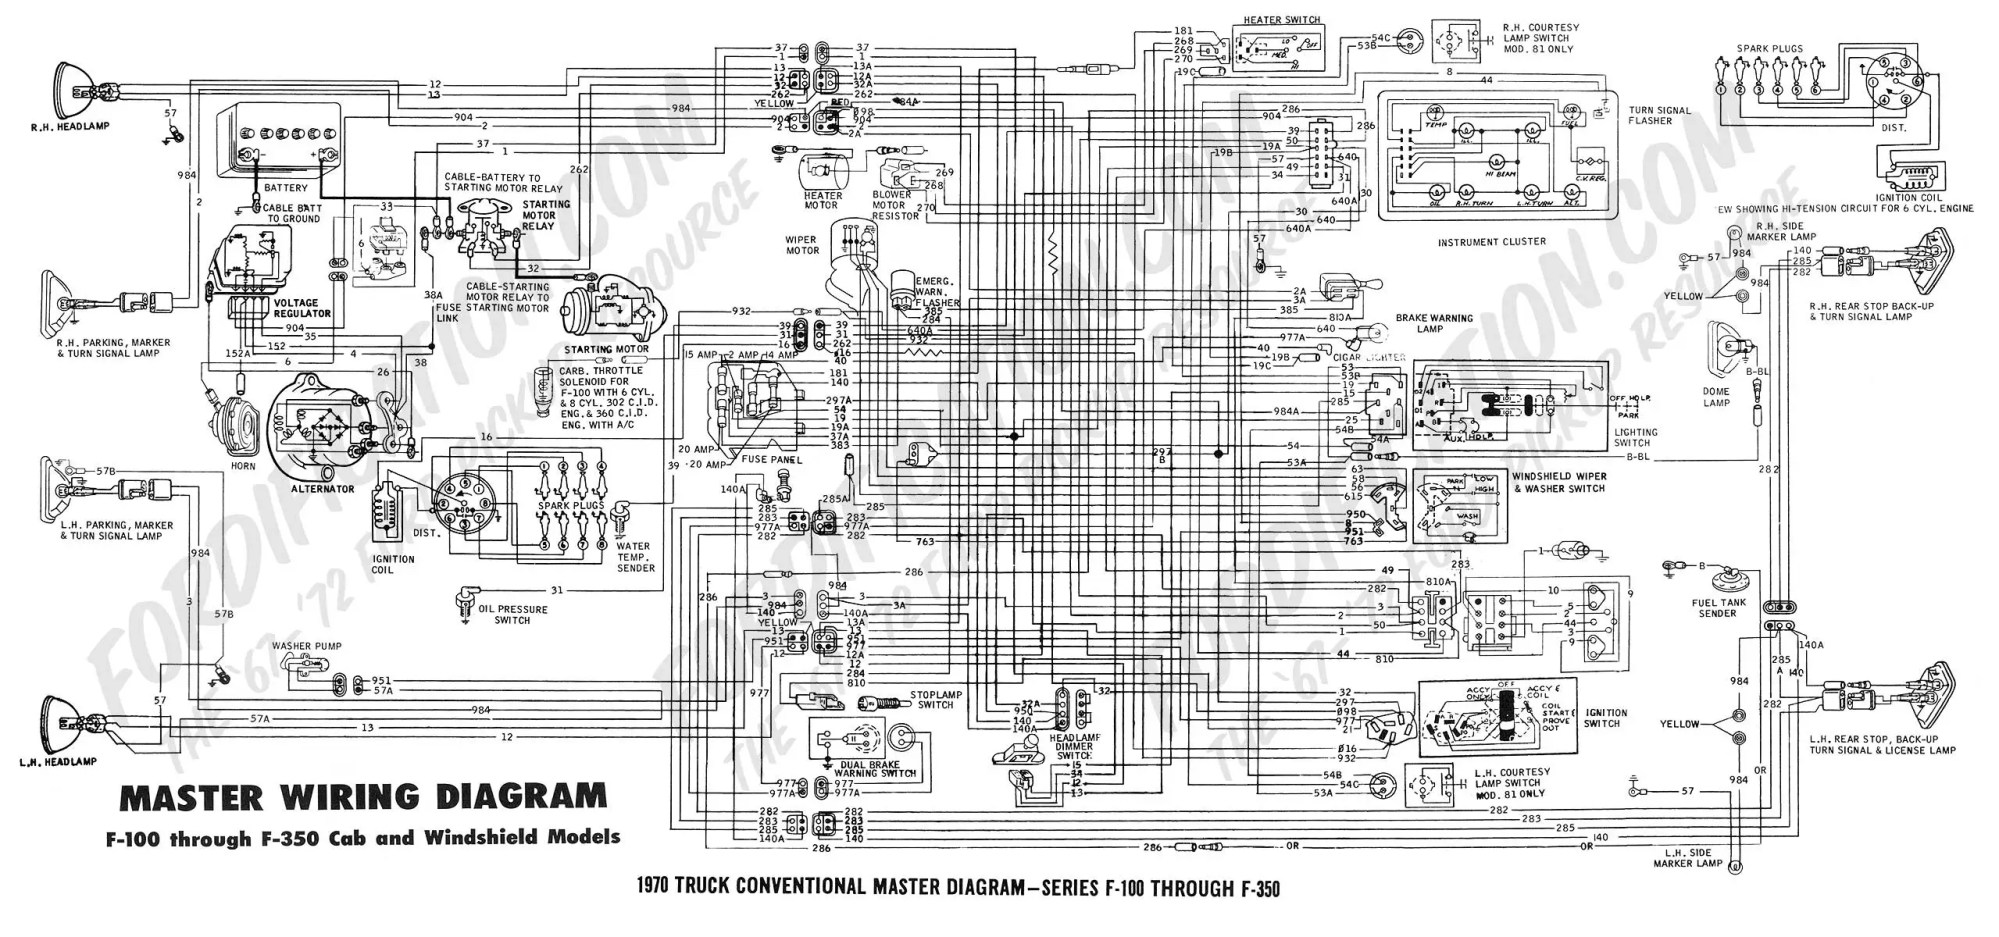 hight resolution of 2000 f250 wiring diagram wiring diagram expert ford 2000 wiring diagram 2000 f250 wiring diagram